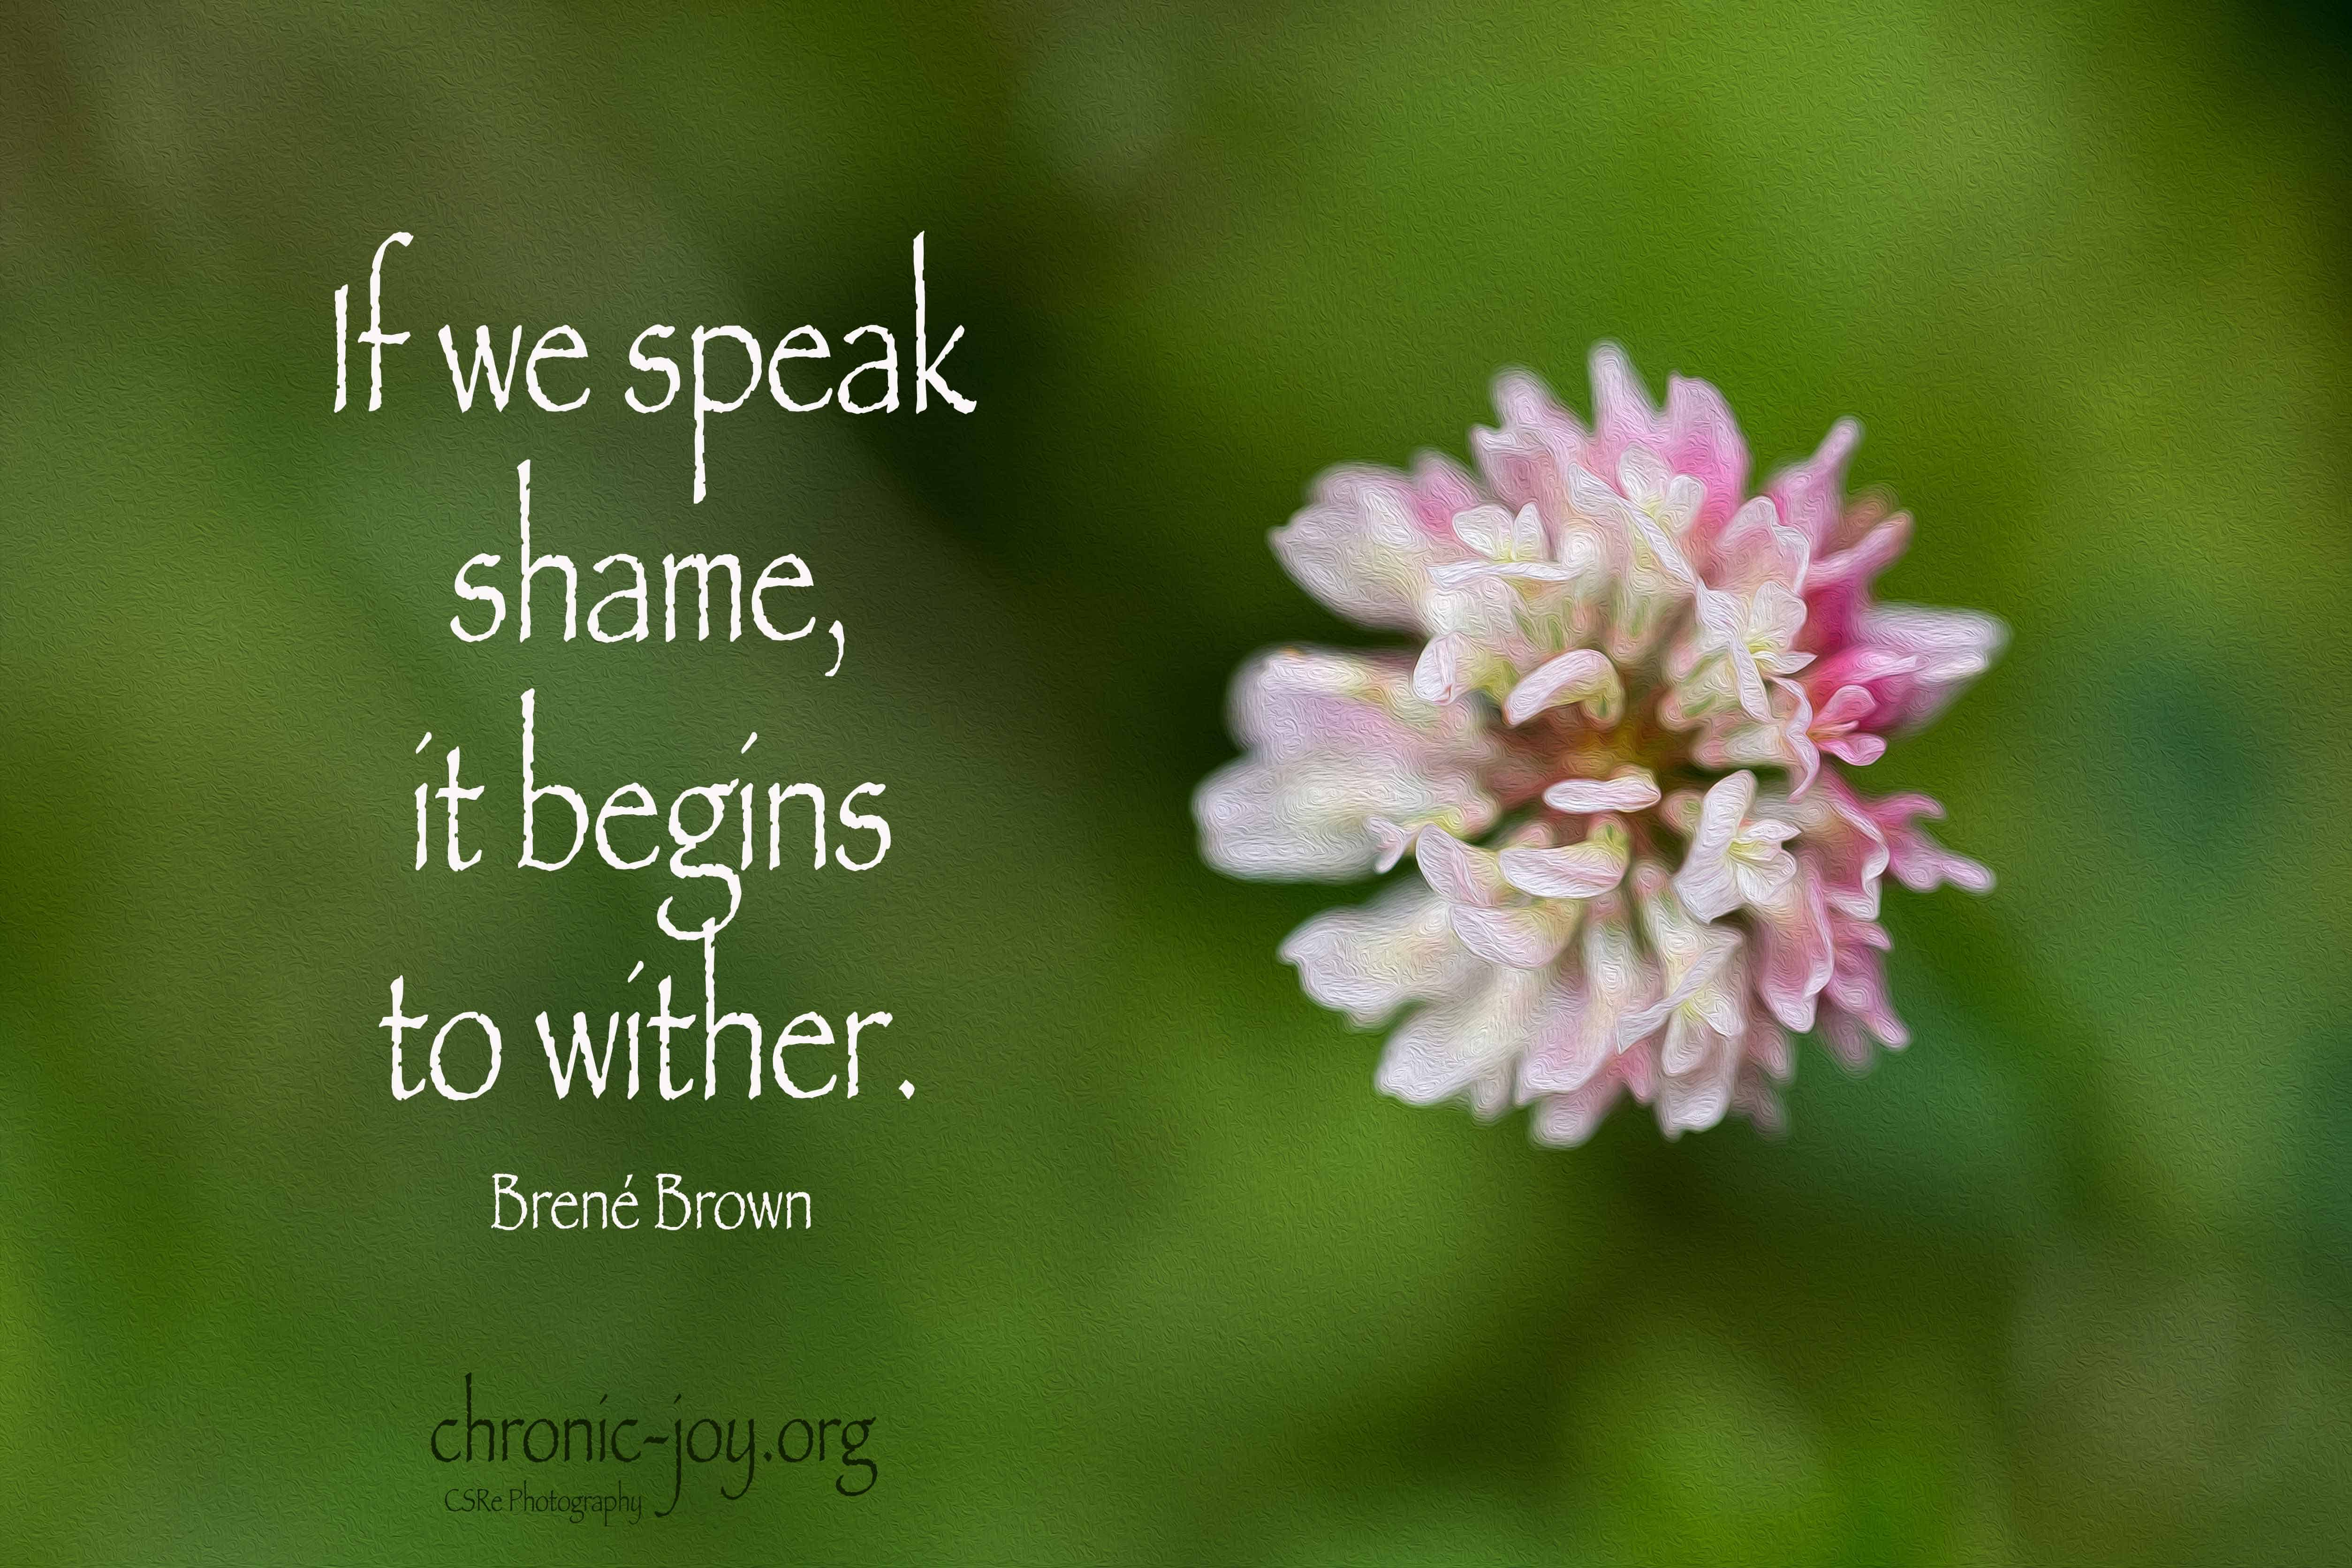 If we speak shame, it begins to wither. ~ Brené Brown